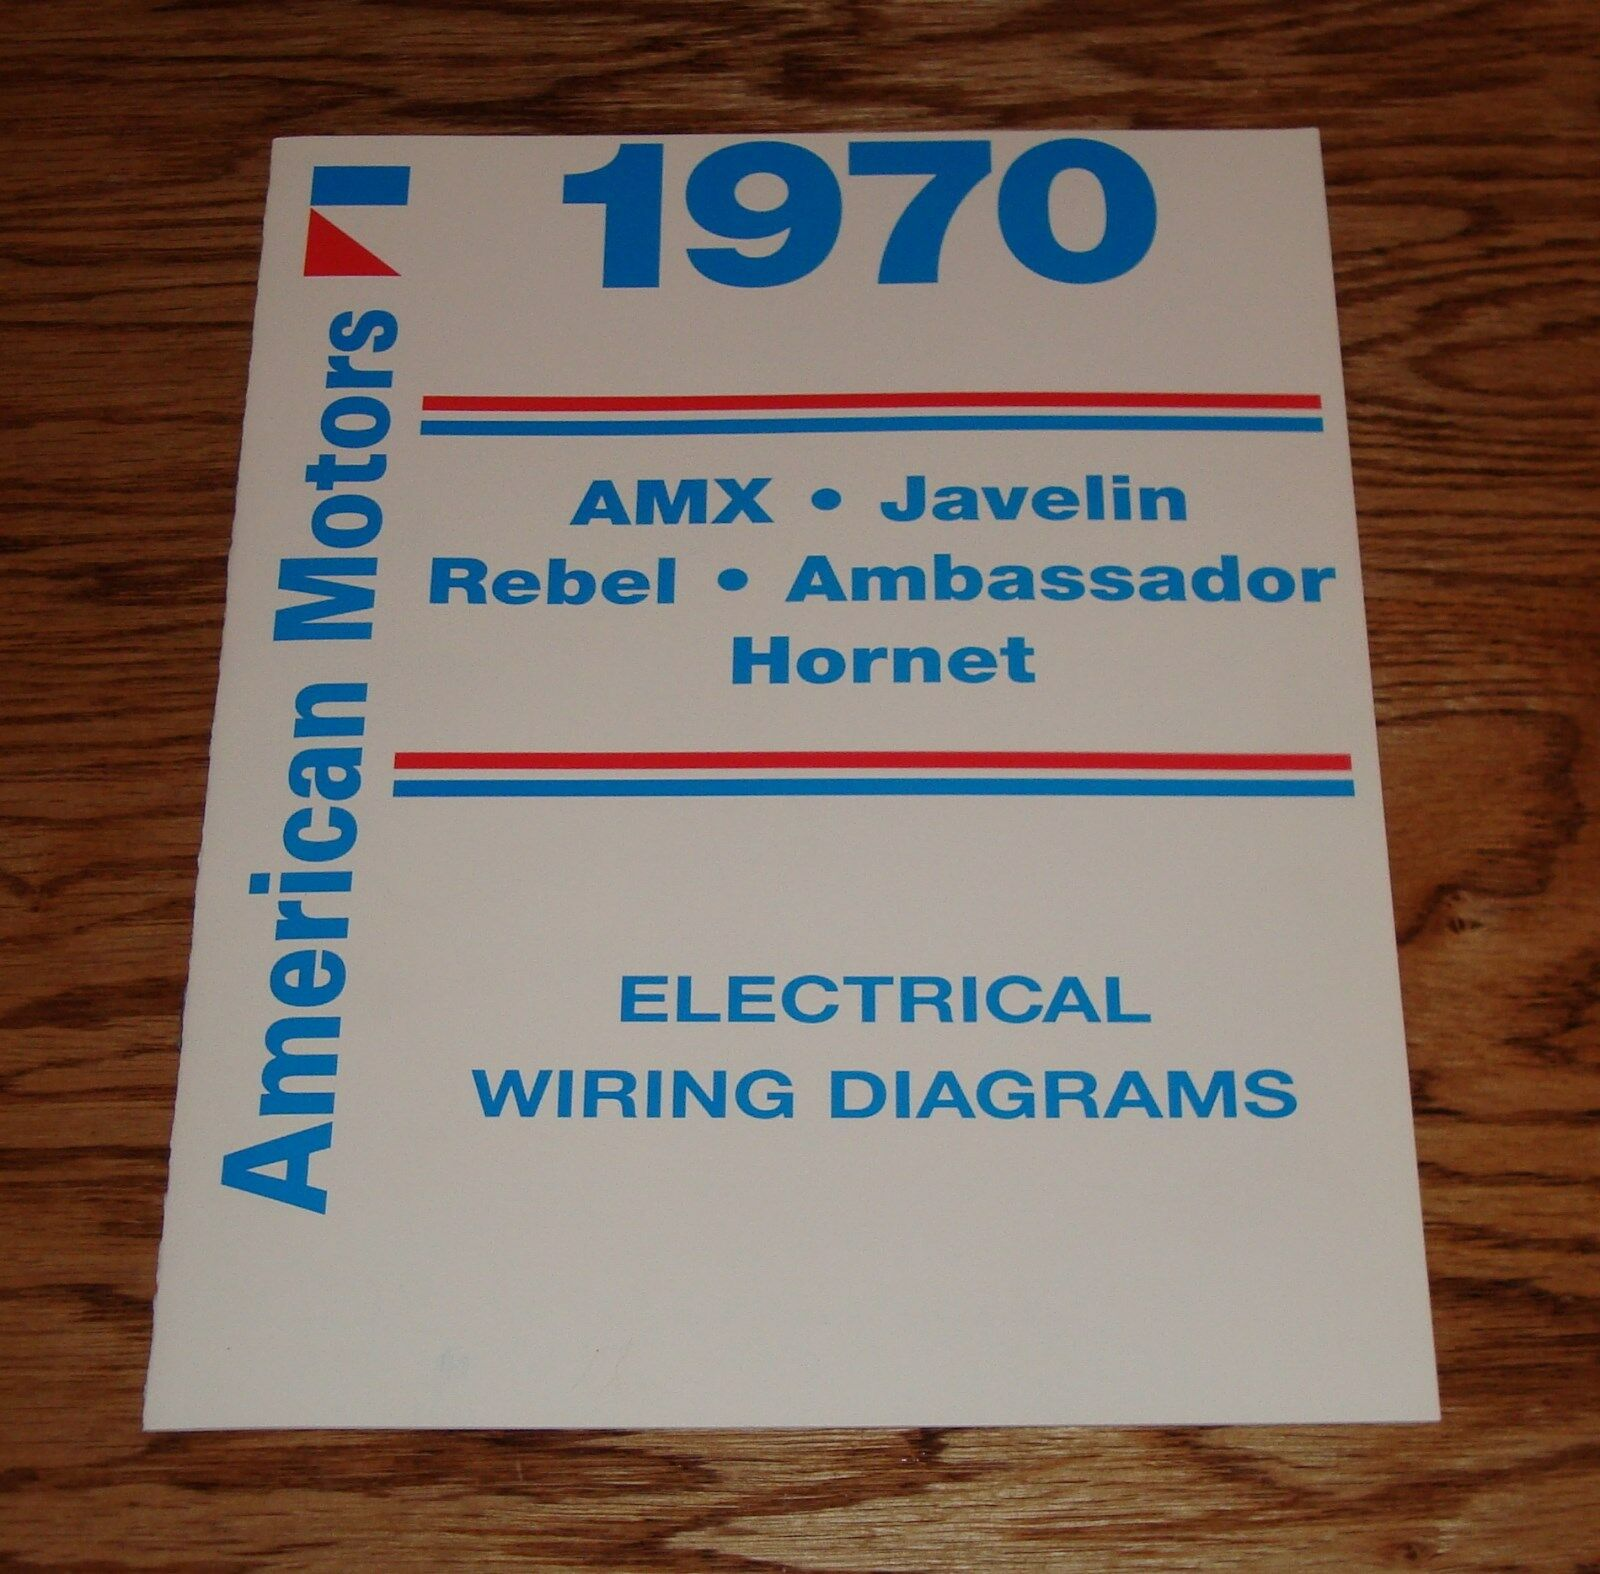 Amx Wiring Diagram Library Msd For 77 Hornet The Amc Forum Harness 1970 Manual 70 Javelin Rebel